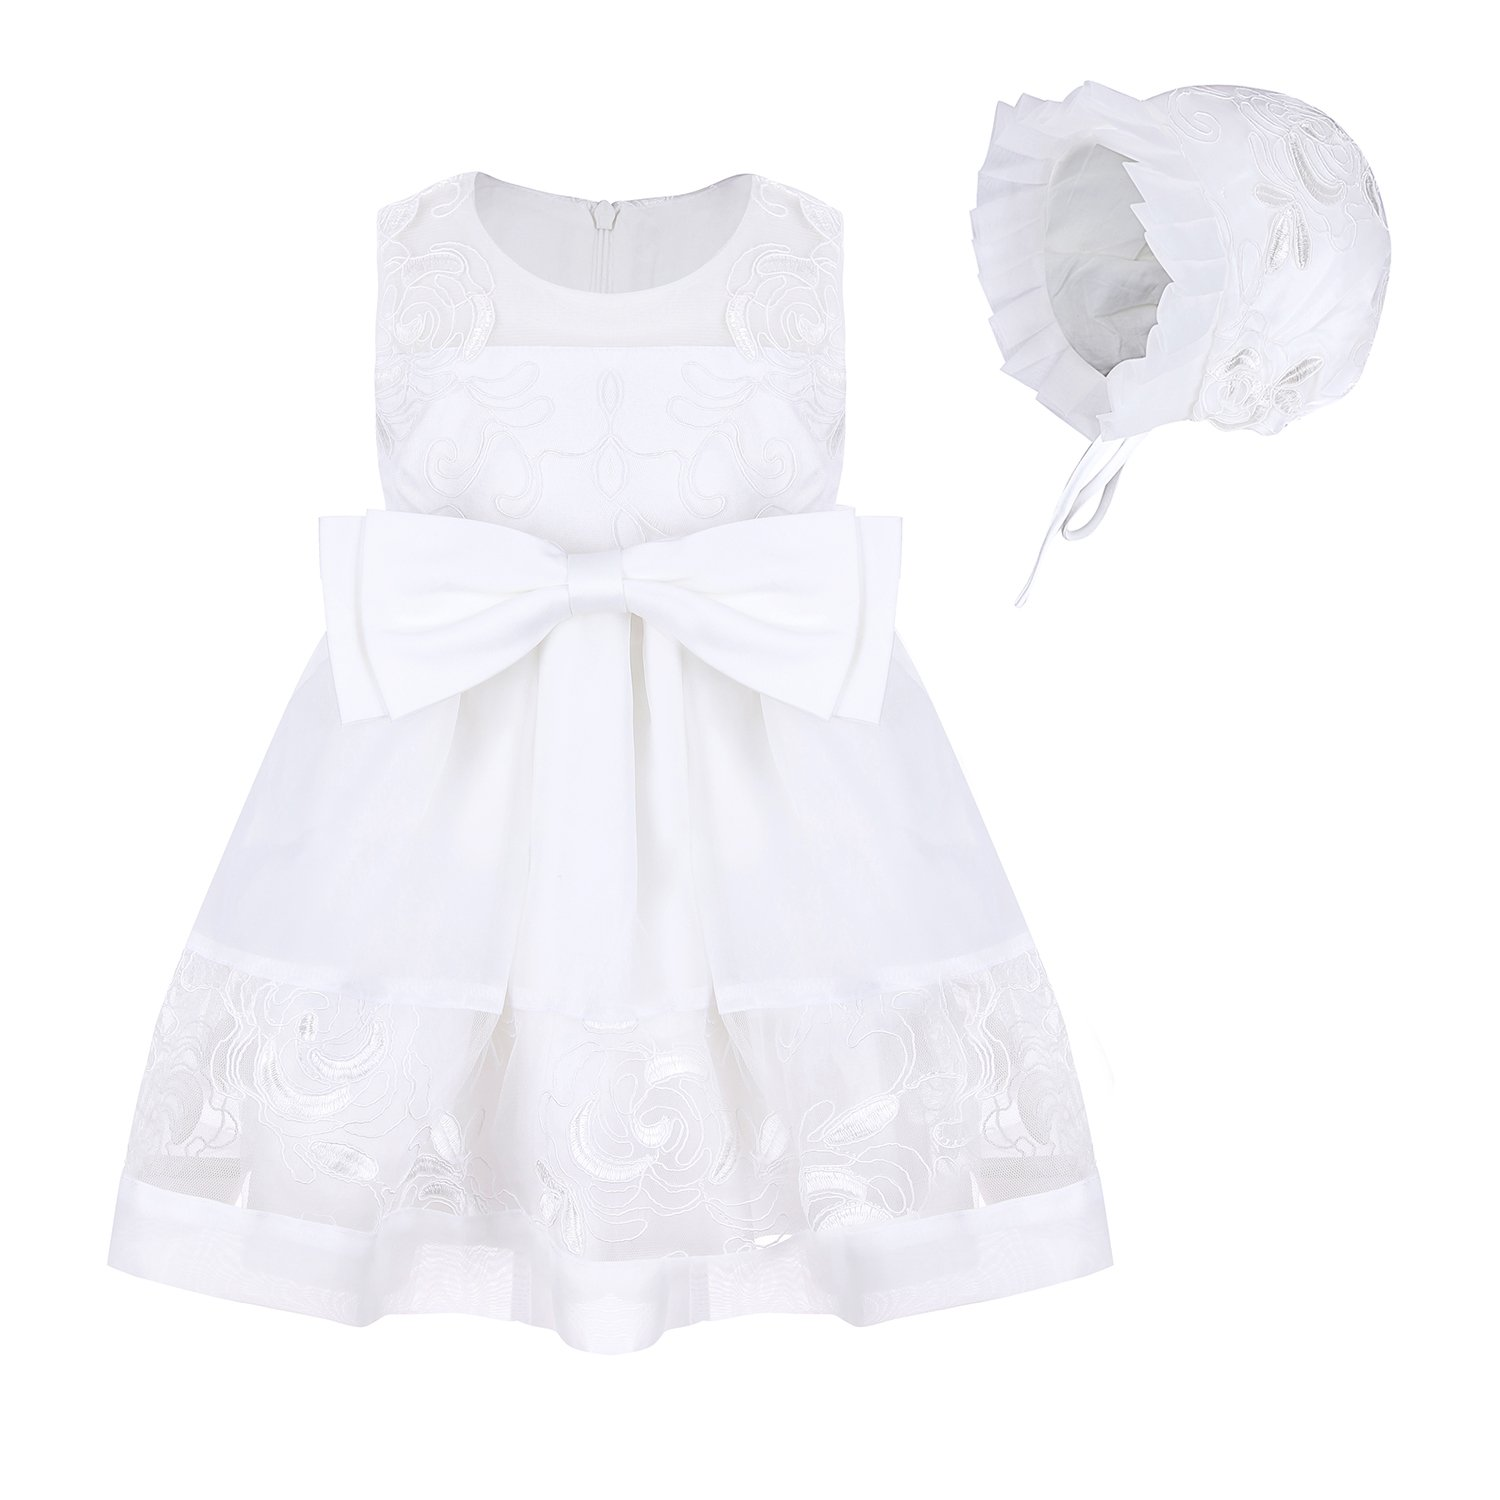 Monimo Baby Girl Dress Lace Bow Christening Gown Princess Dress